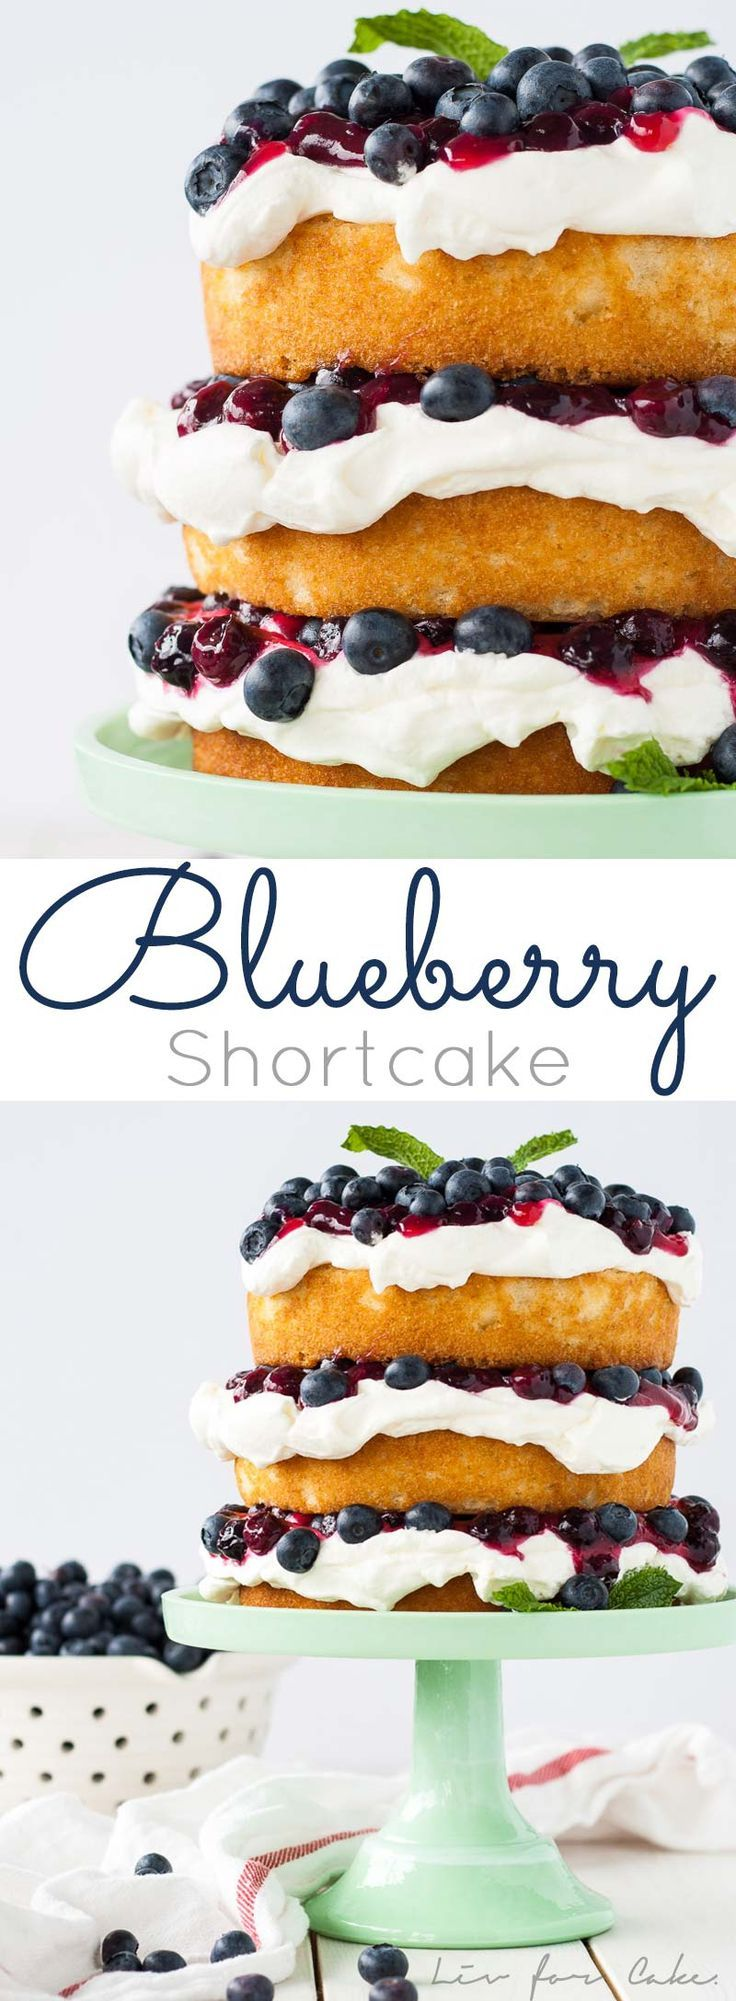 This Blueberry Shortcake is perfectly light dessert for summer. Layers of vanilla cake, whipped cream, blueberry sauce, and fresh blueberries. | http://livforcake.com